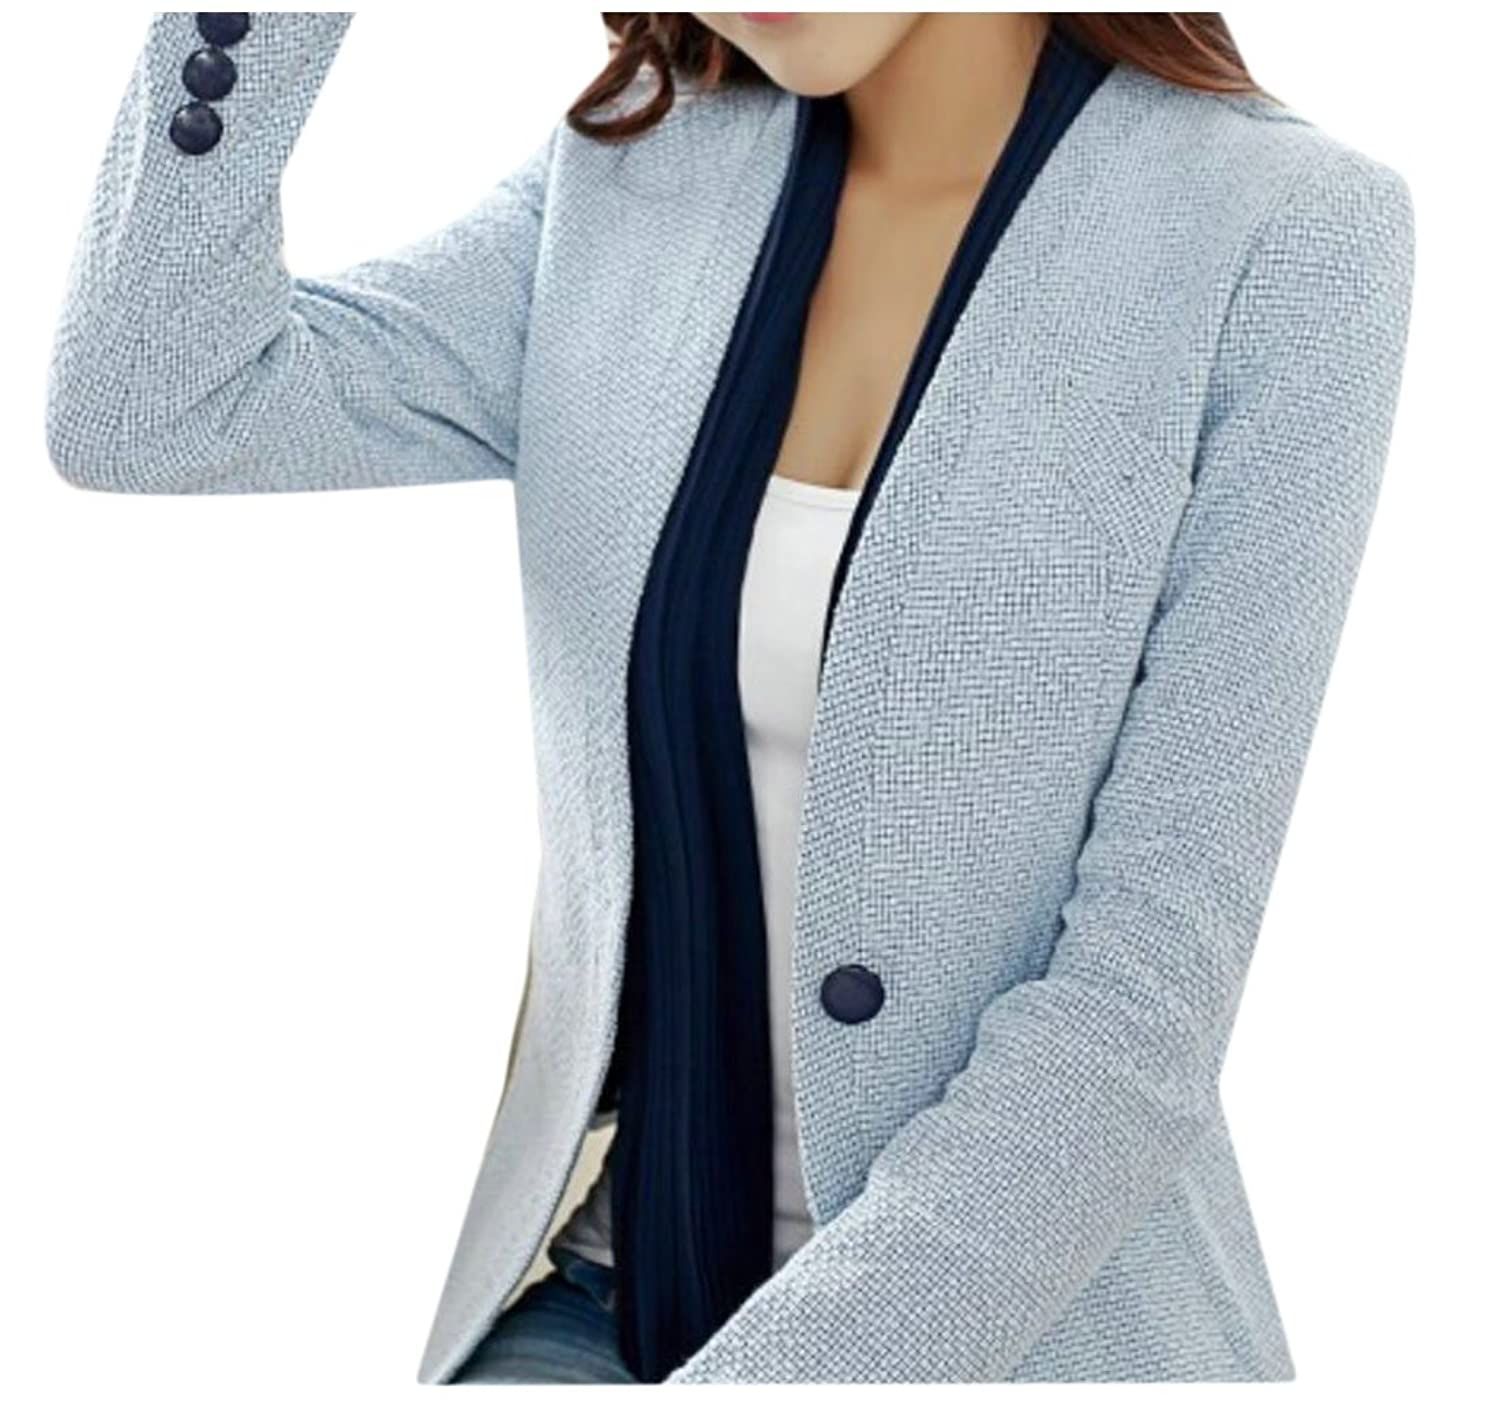 ainr Women's Button Down Long Sleeve Official Coats Suits Blazer Jackets free shipping